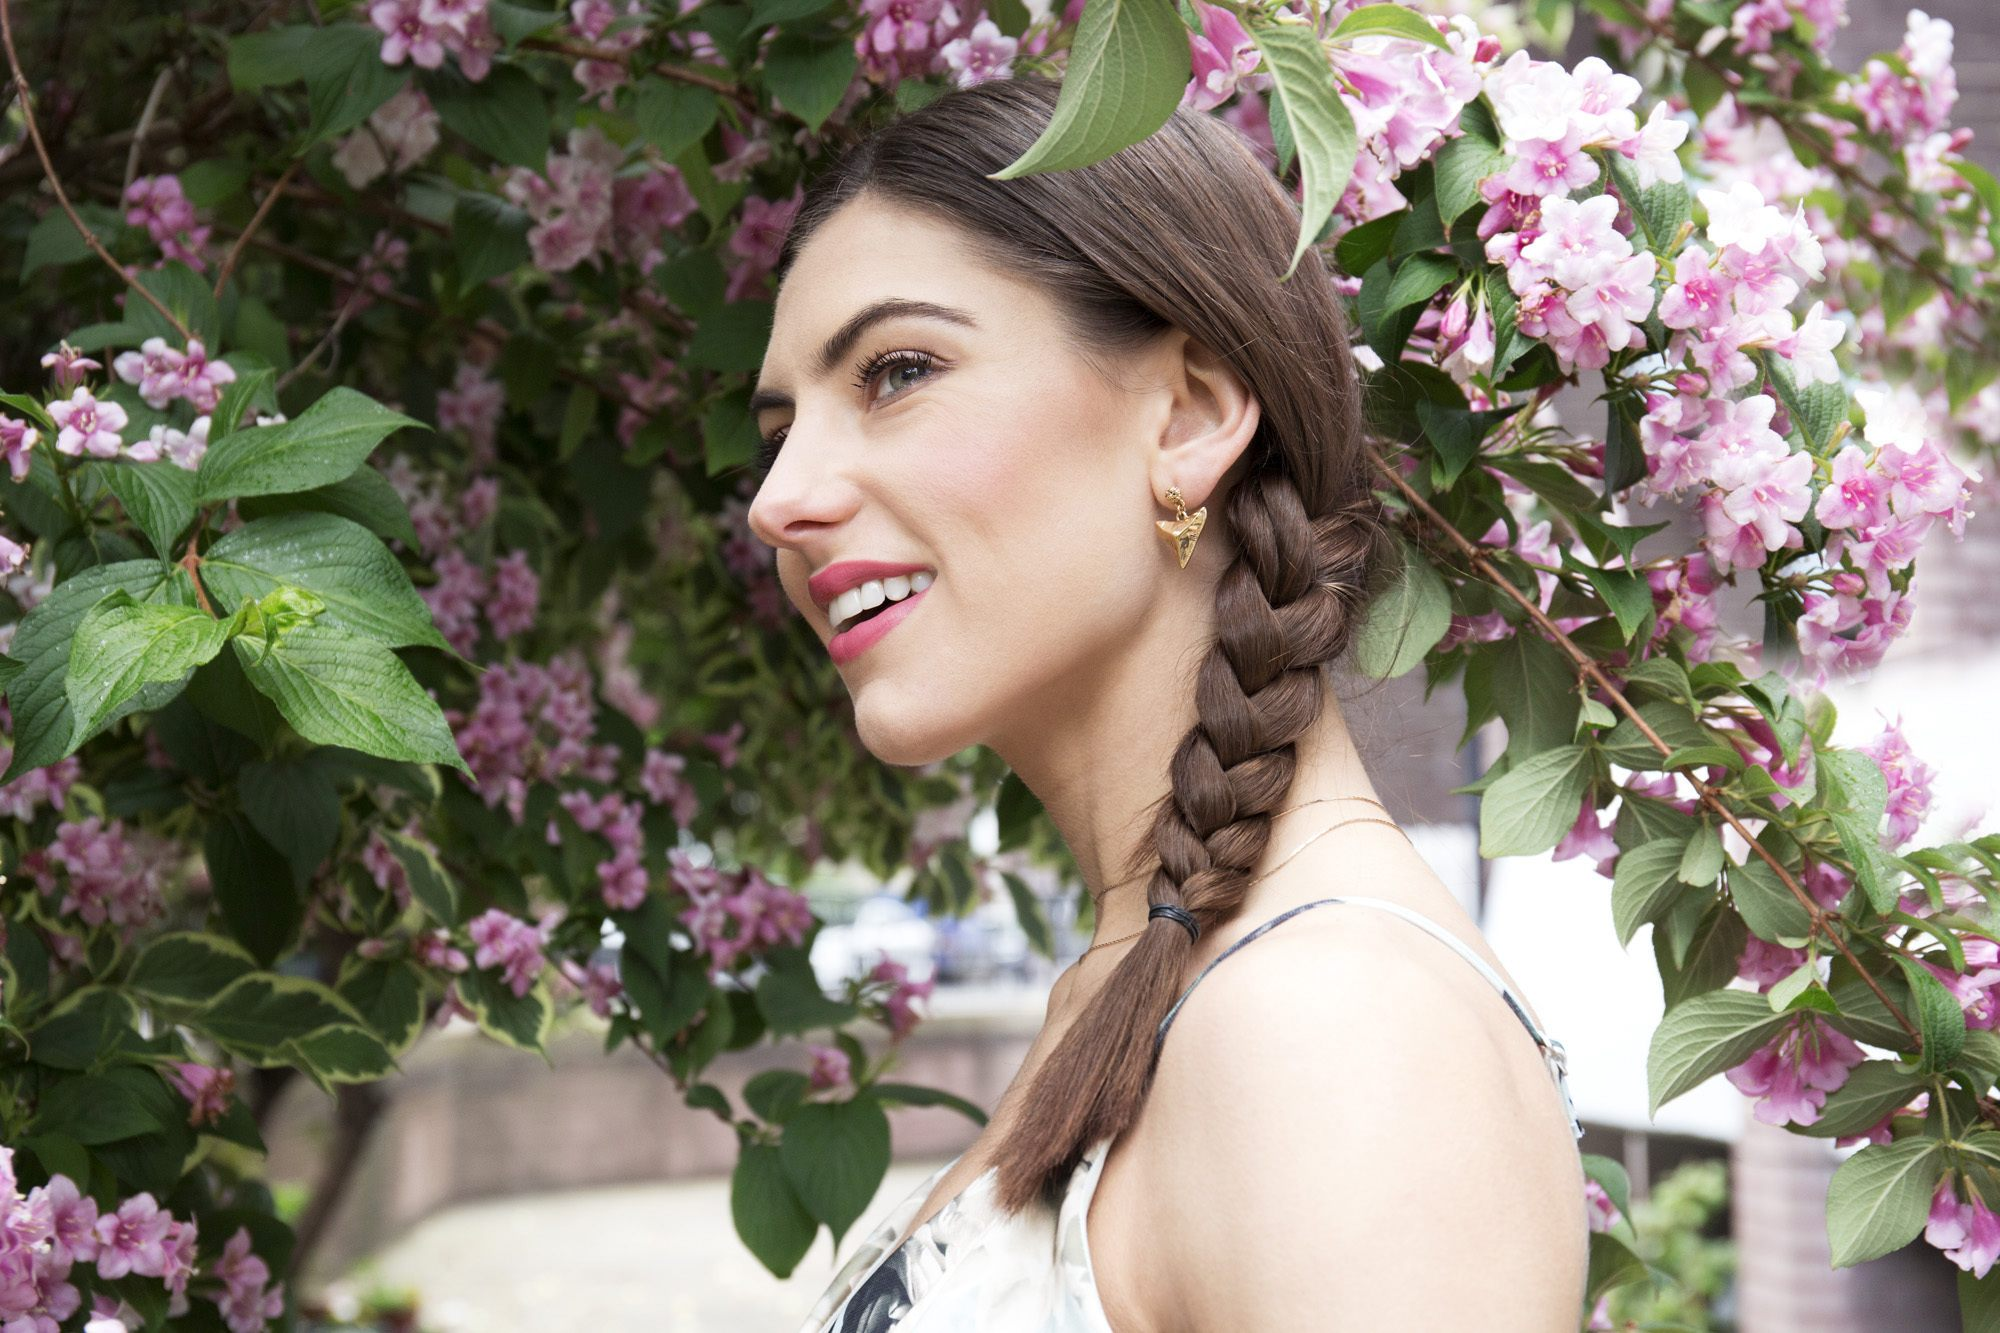 Side view of brunette model with side braid